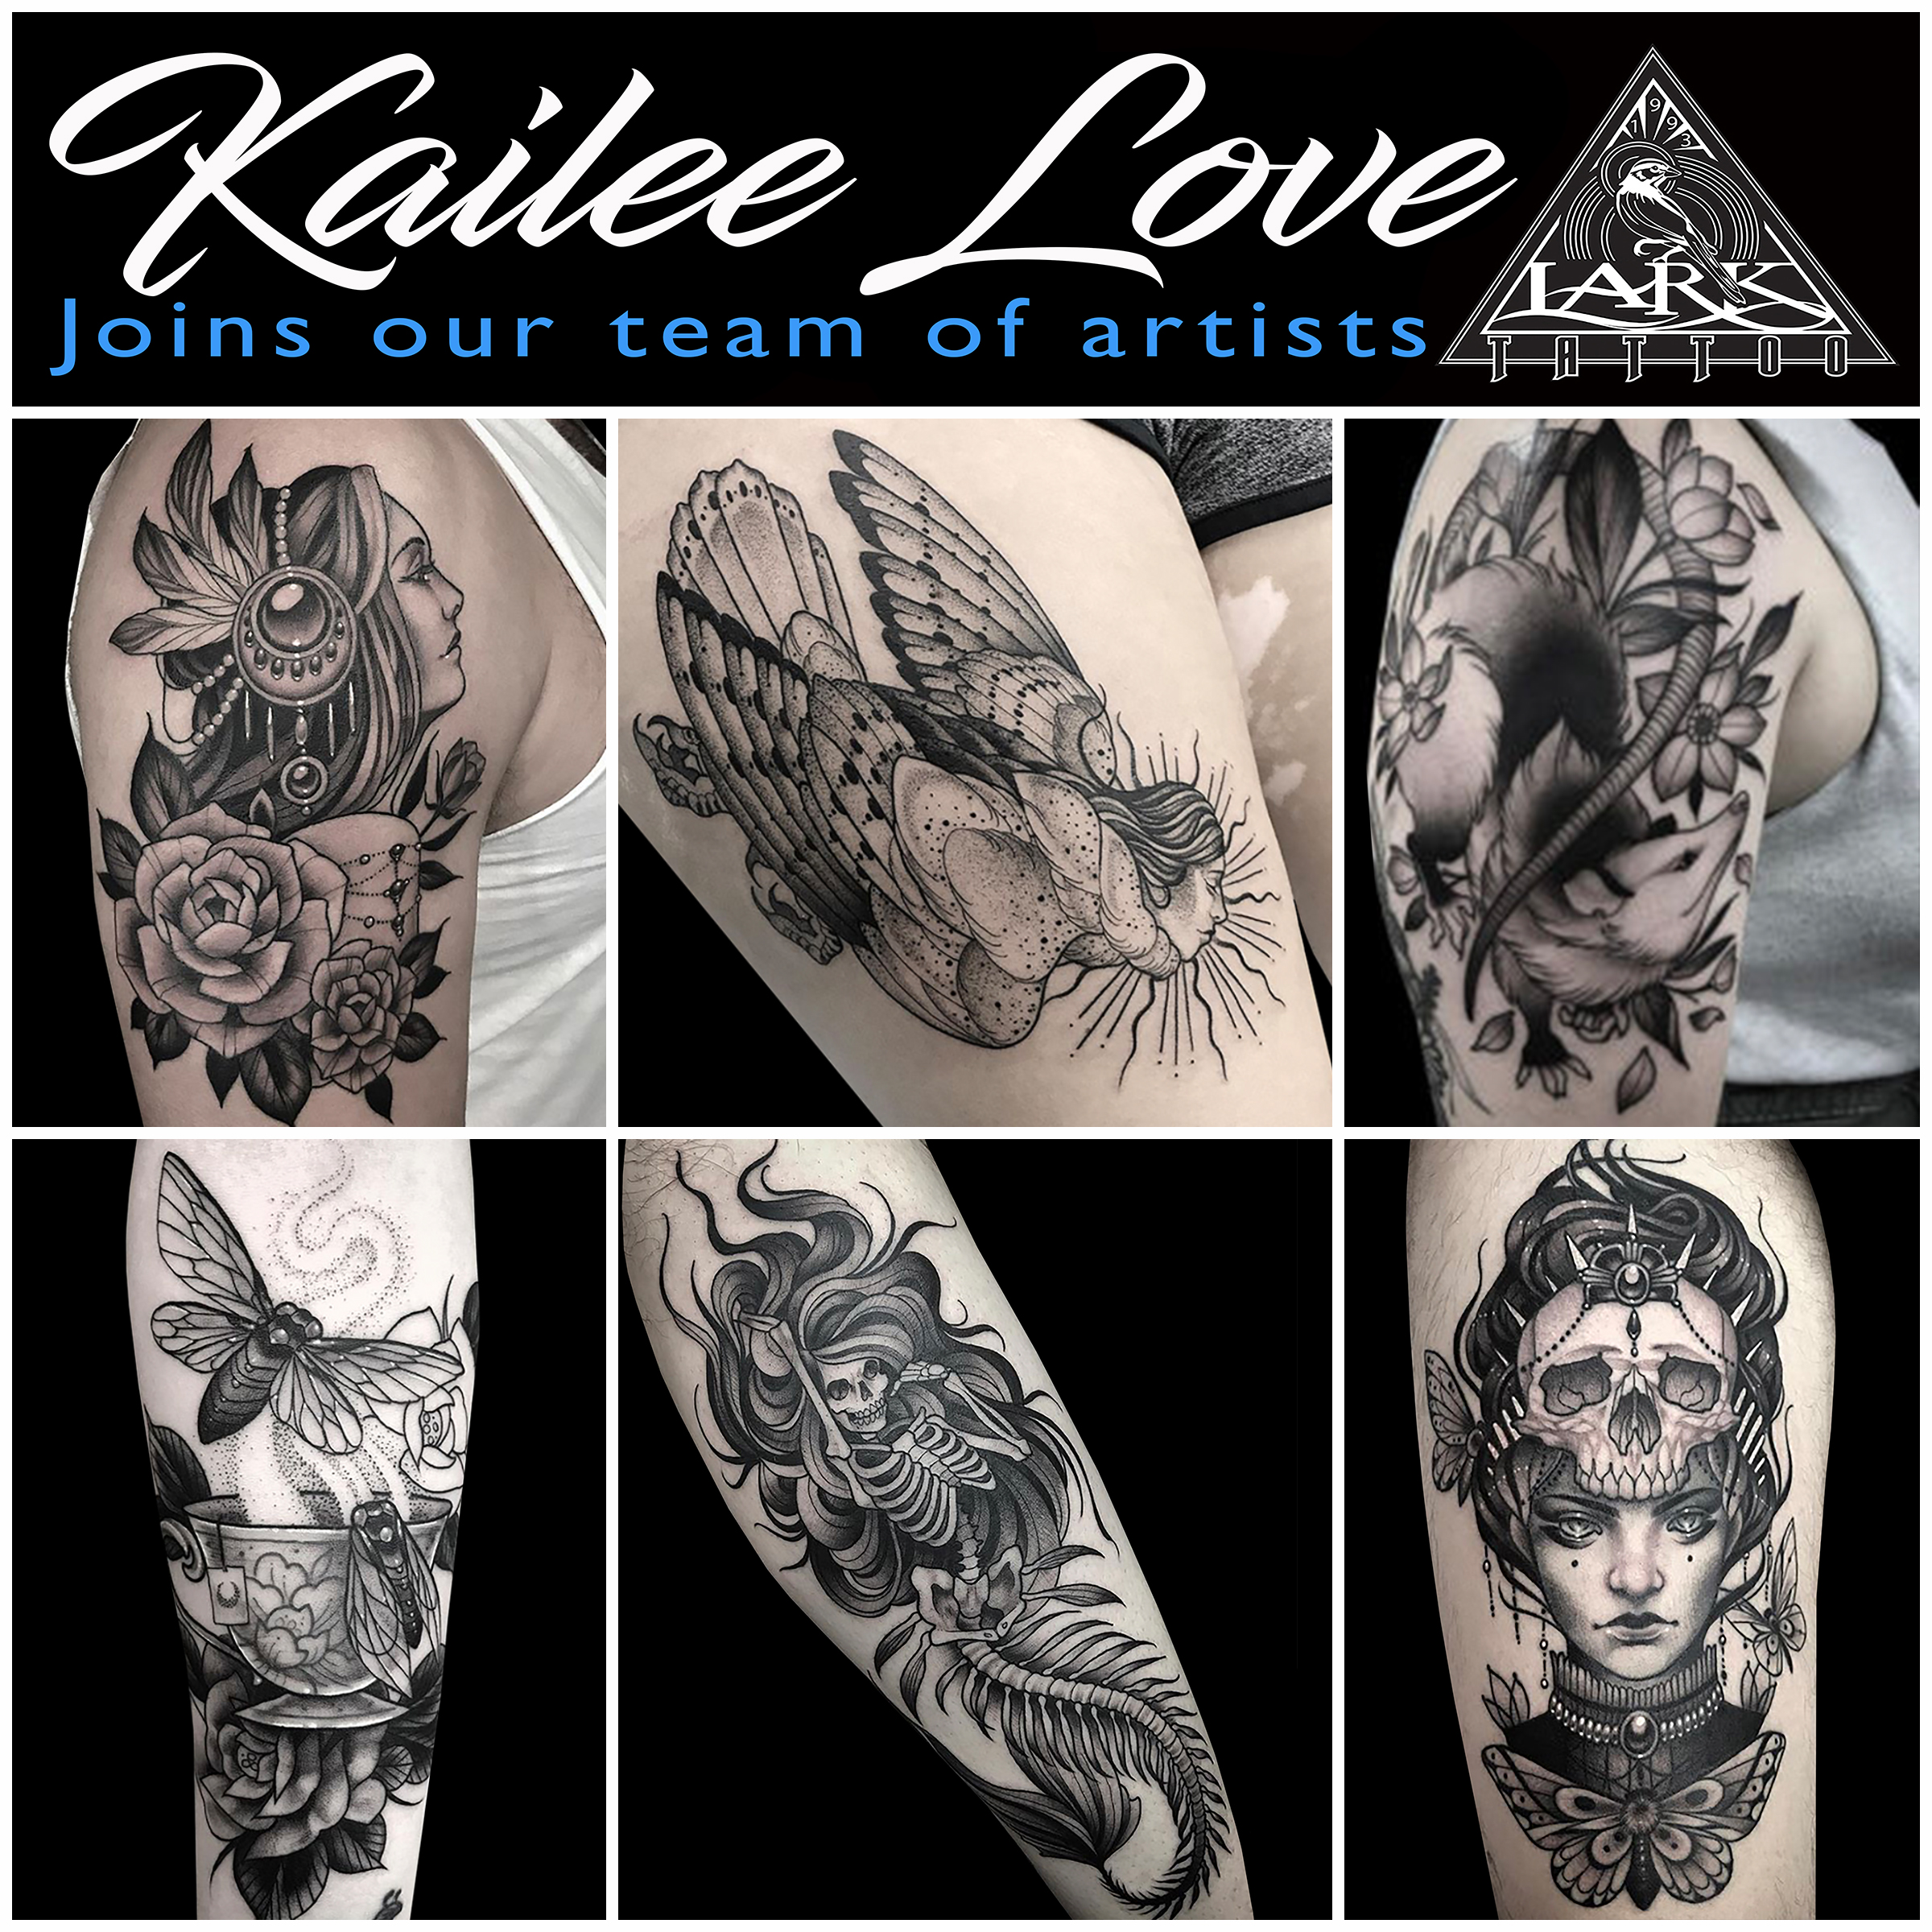 #KaileeLove #Kailee #Love,#LarkTattoo #Tattoo #Tattoos  #LadyTattoer #FemaleArtist #FemaleTattoer #BNGTattoo #BlackAndGray #BlackAndGrayTattoo #AnimalTattoo #DarkTattoo #ScaryTattoo #CreepyTattoo #TattooArtist #Tattoist #Tattooer #LongIslandTattooArtist #LongIslandTattooer #LongIslandTattoo #TattooOfTheDay #Tat #Tats #Tatts #Tatted #Inked #Ink #TattooInk #AmazingInk #AmazingTattoo #BodyArt #LarkTattooWestbury #Westbury #LongIsland #NY #NewYork #USA #Art #Tattedup #InkedUp #LarkTattoos